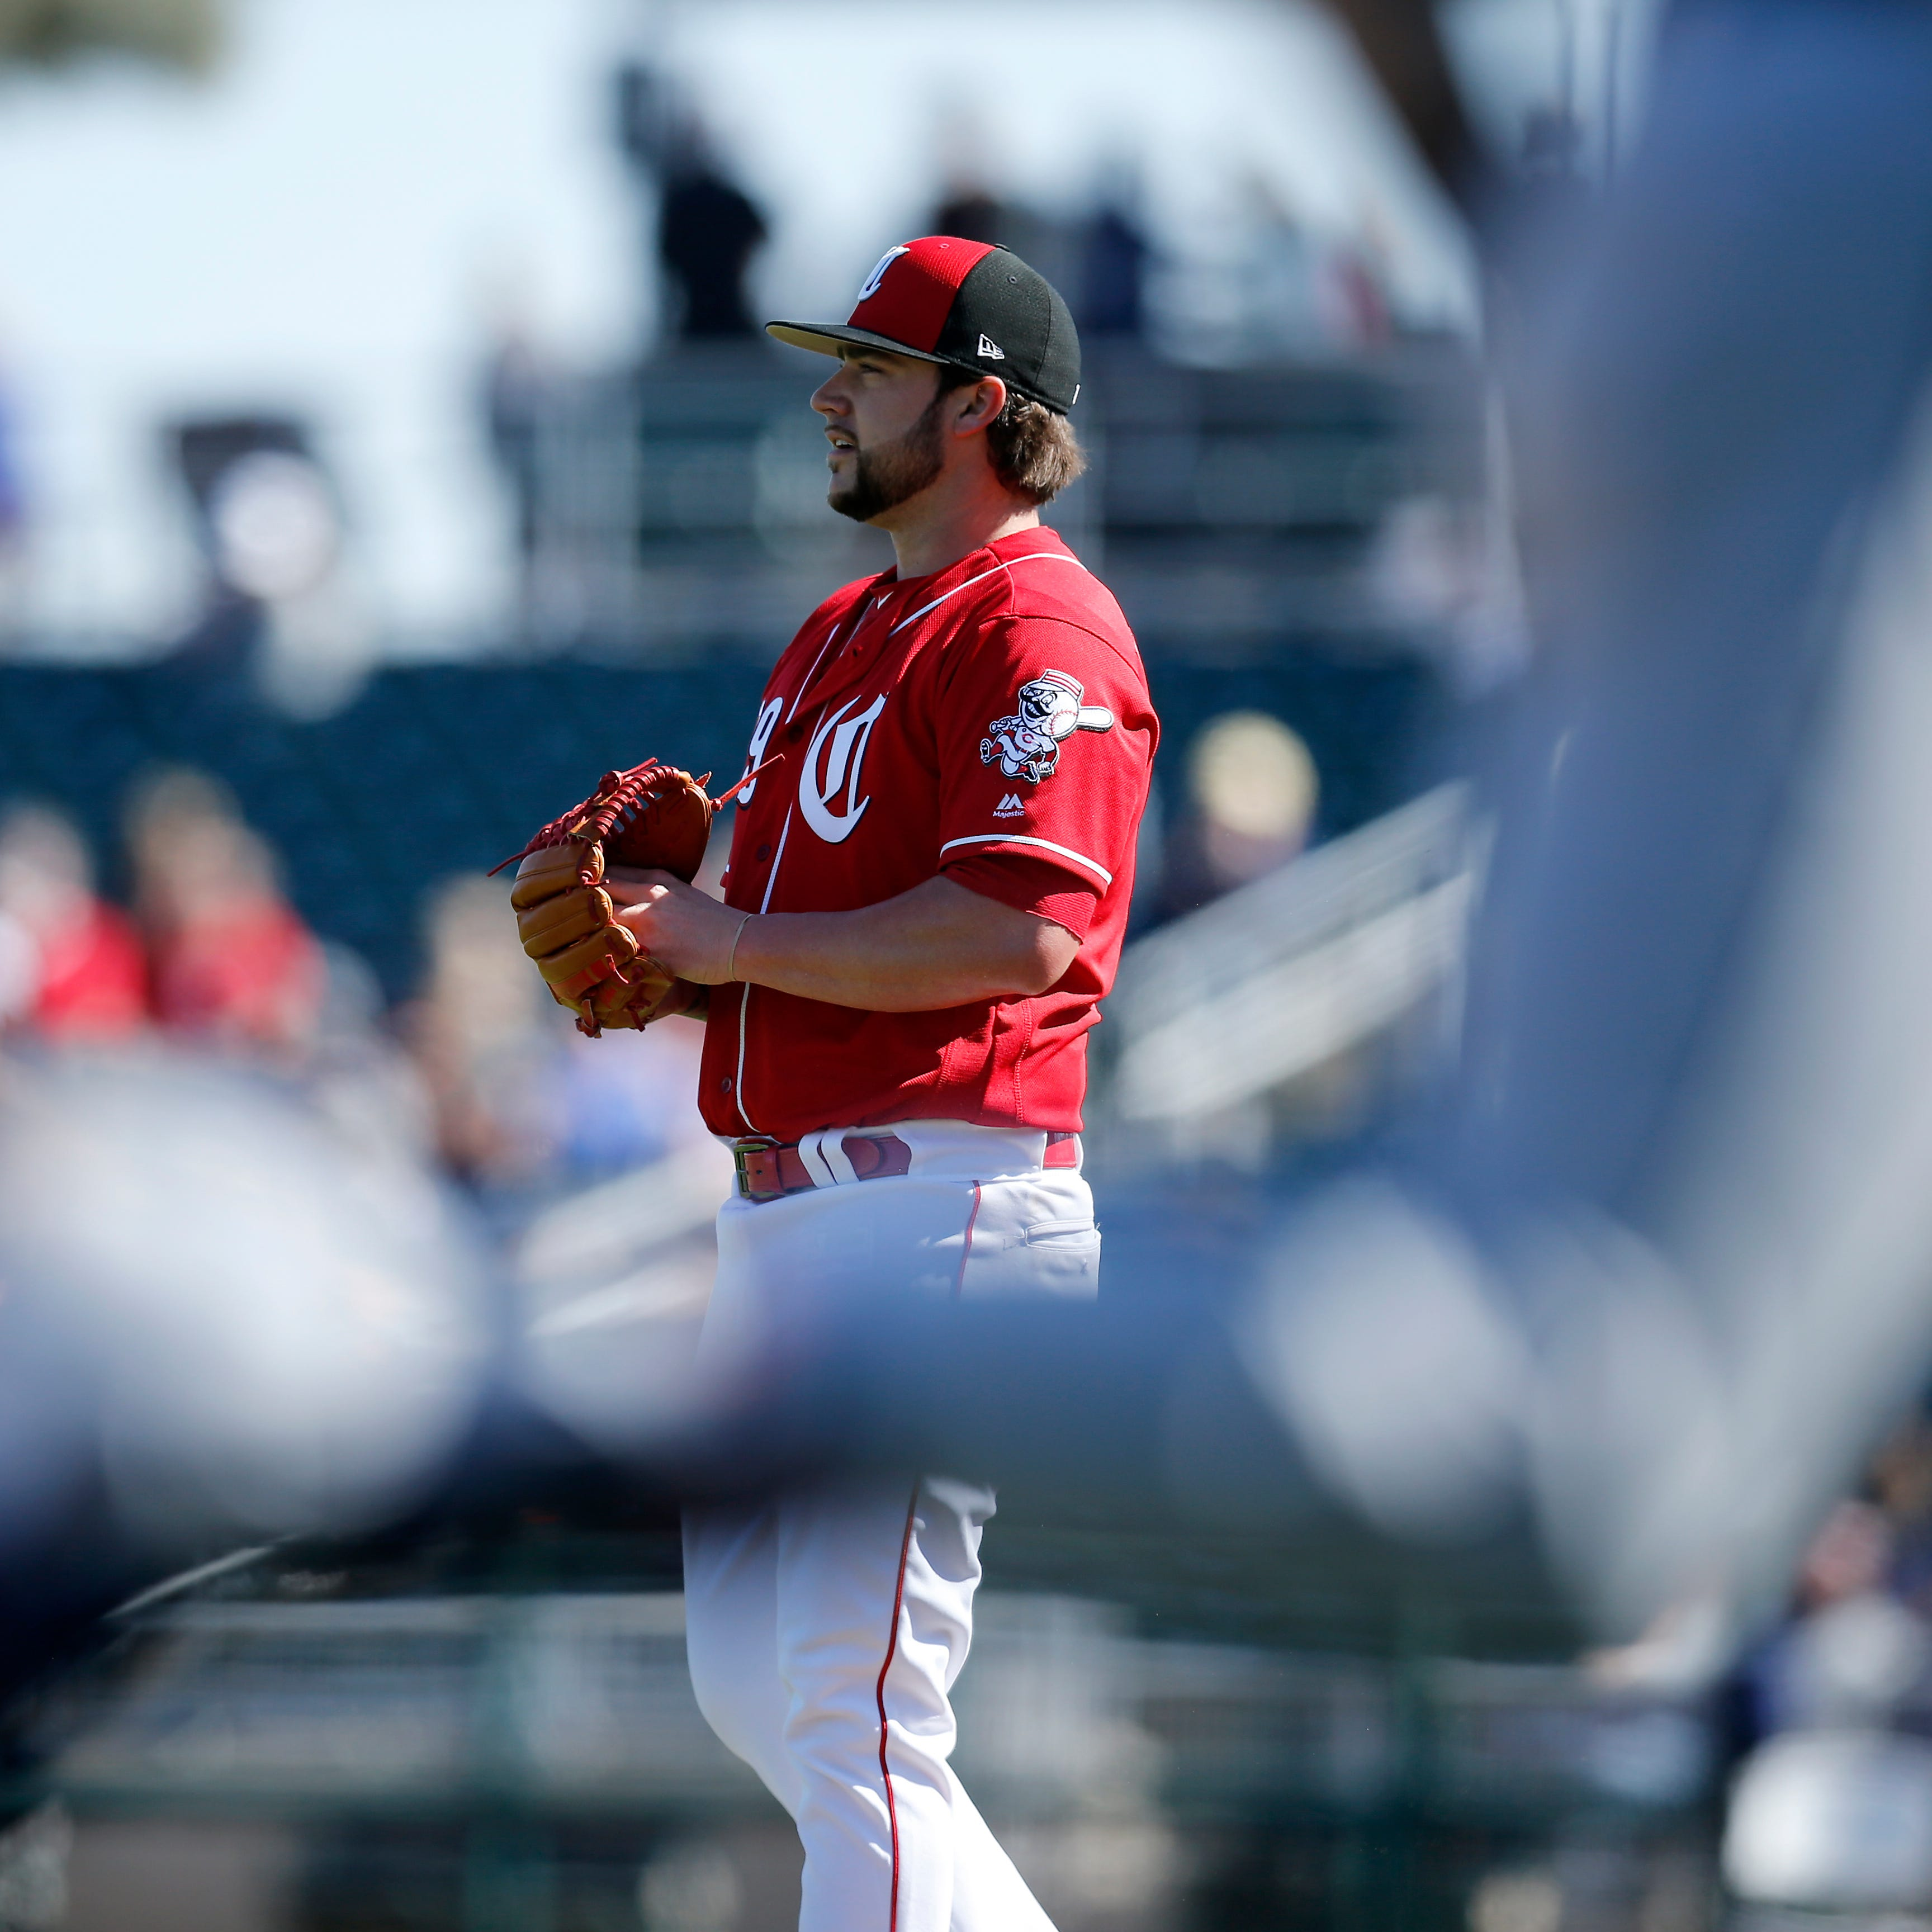 Cincinnati Reds cut 5 players from big league camp, including pitcher Brandon Finnegan